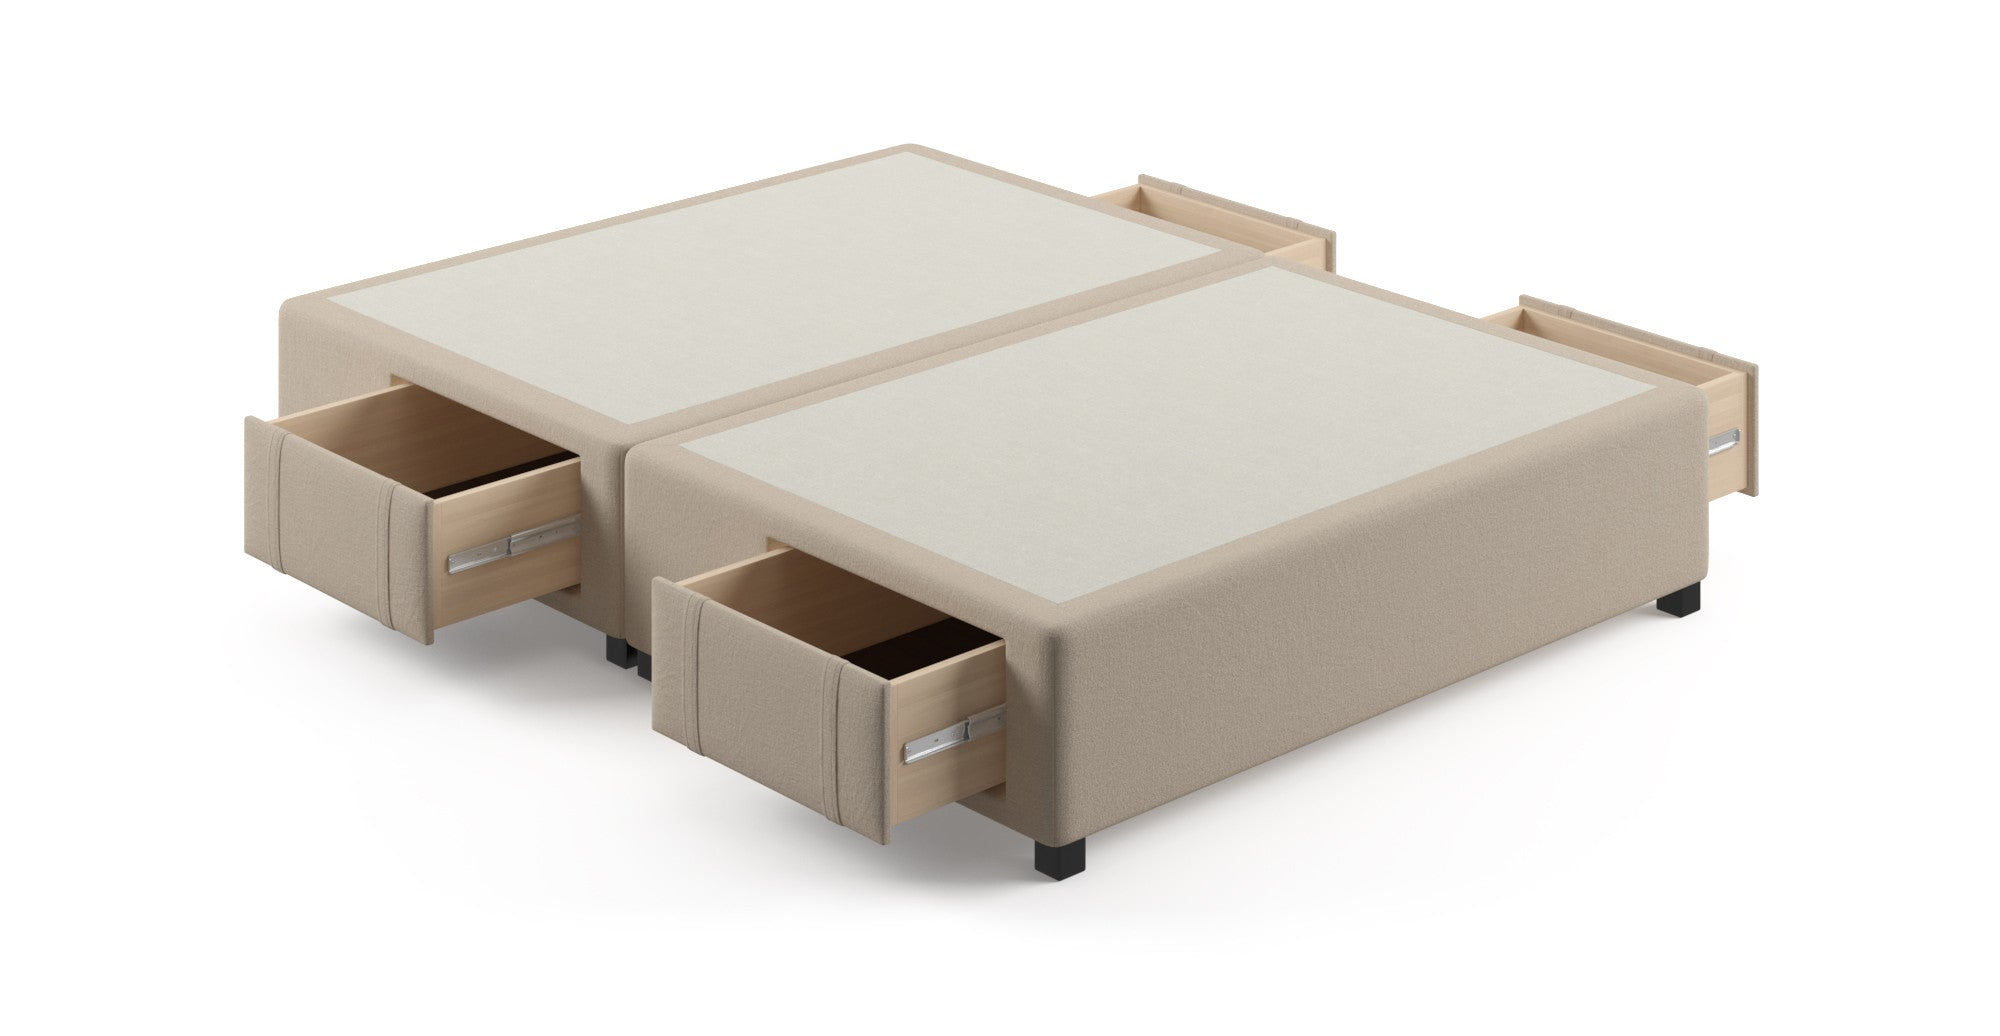 Queen size upholstered bed frame base with storage drawers for Upholstered bed with drawers